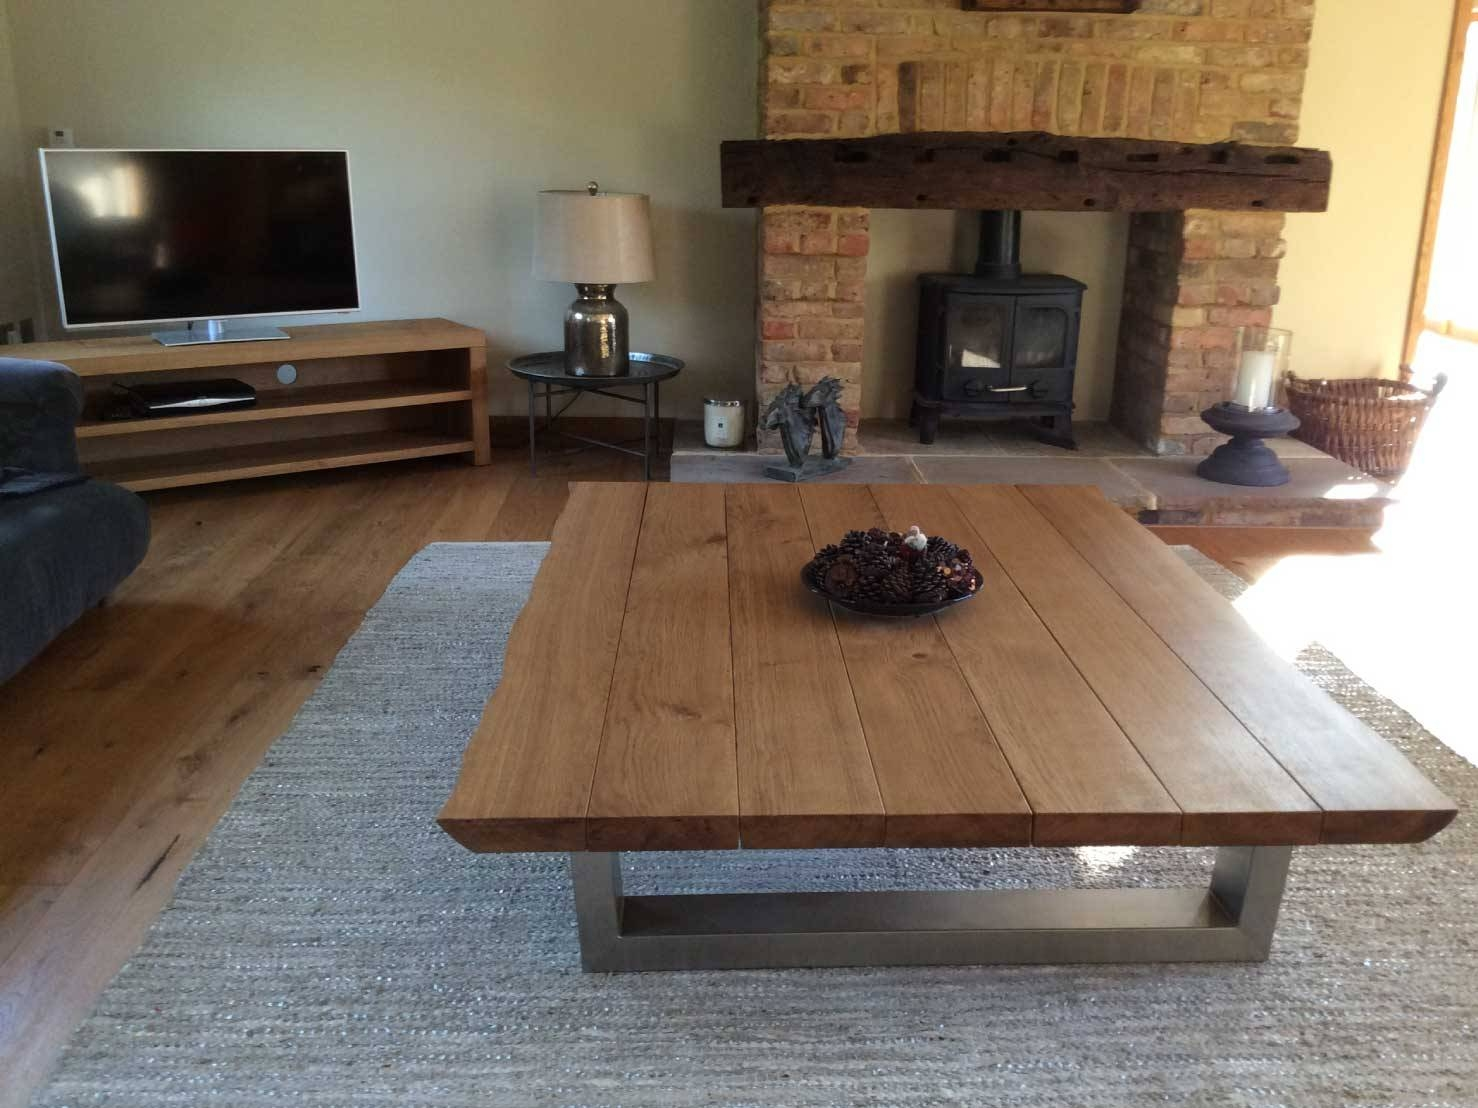 Extra Large Coffee Table | Abacus Tables intended for Extra Large Coffee Tables (Image 10 of 15)